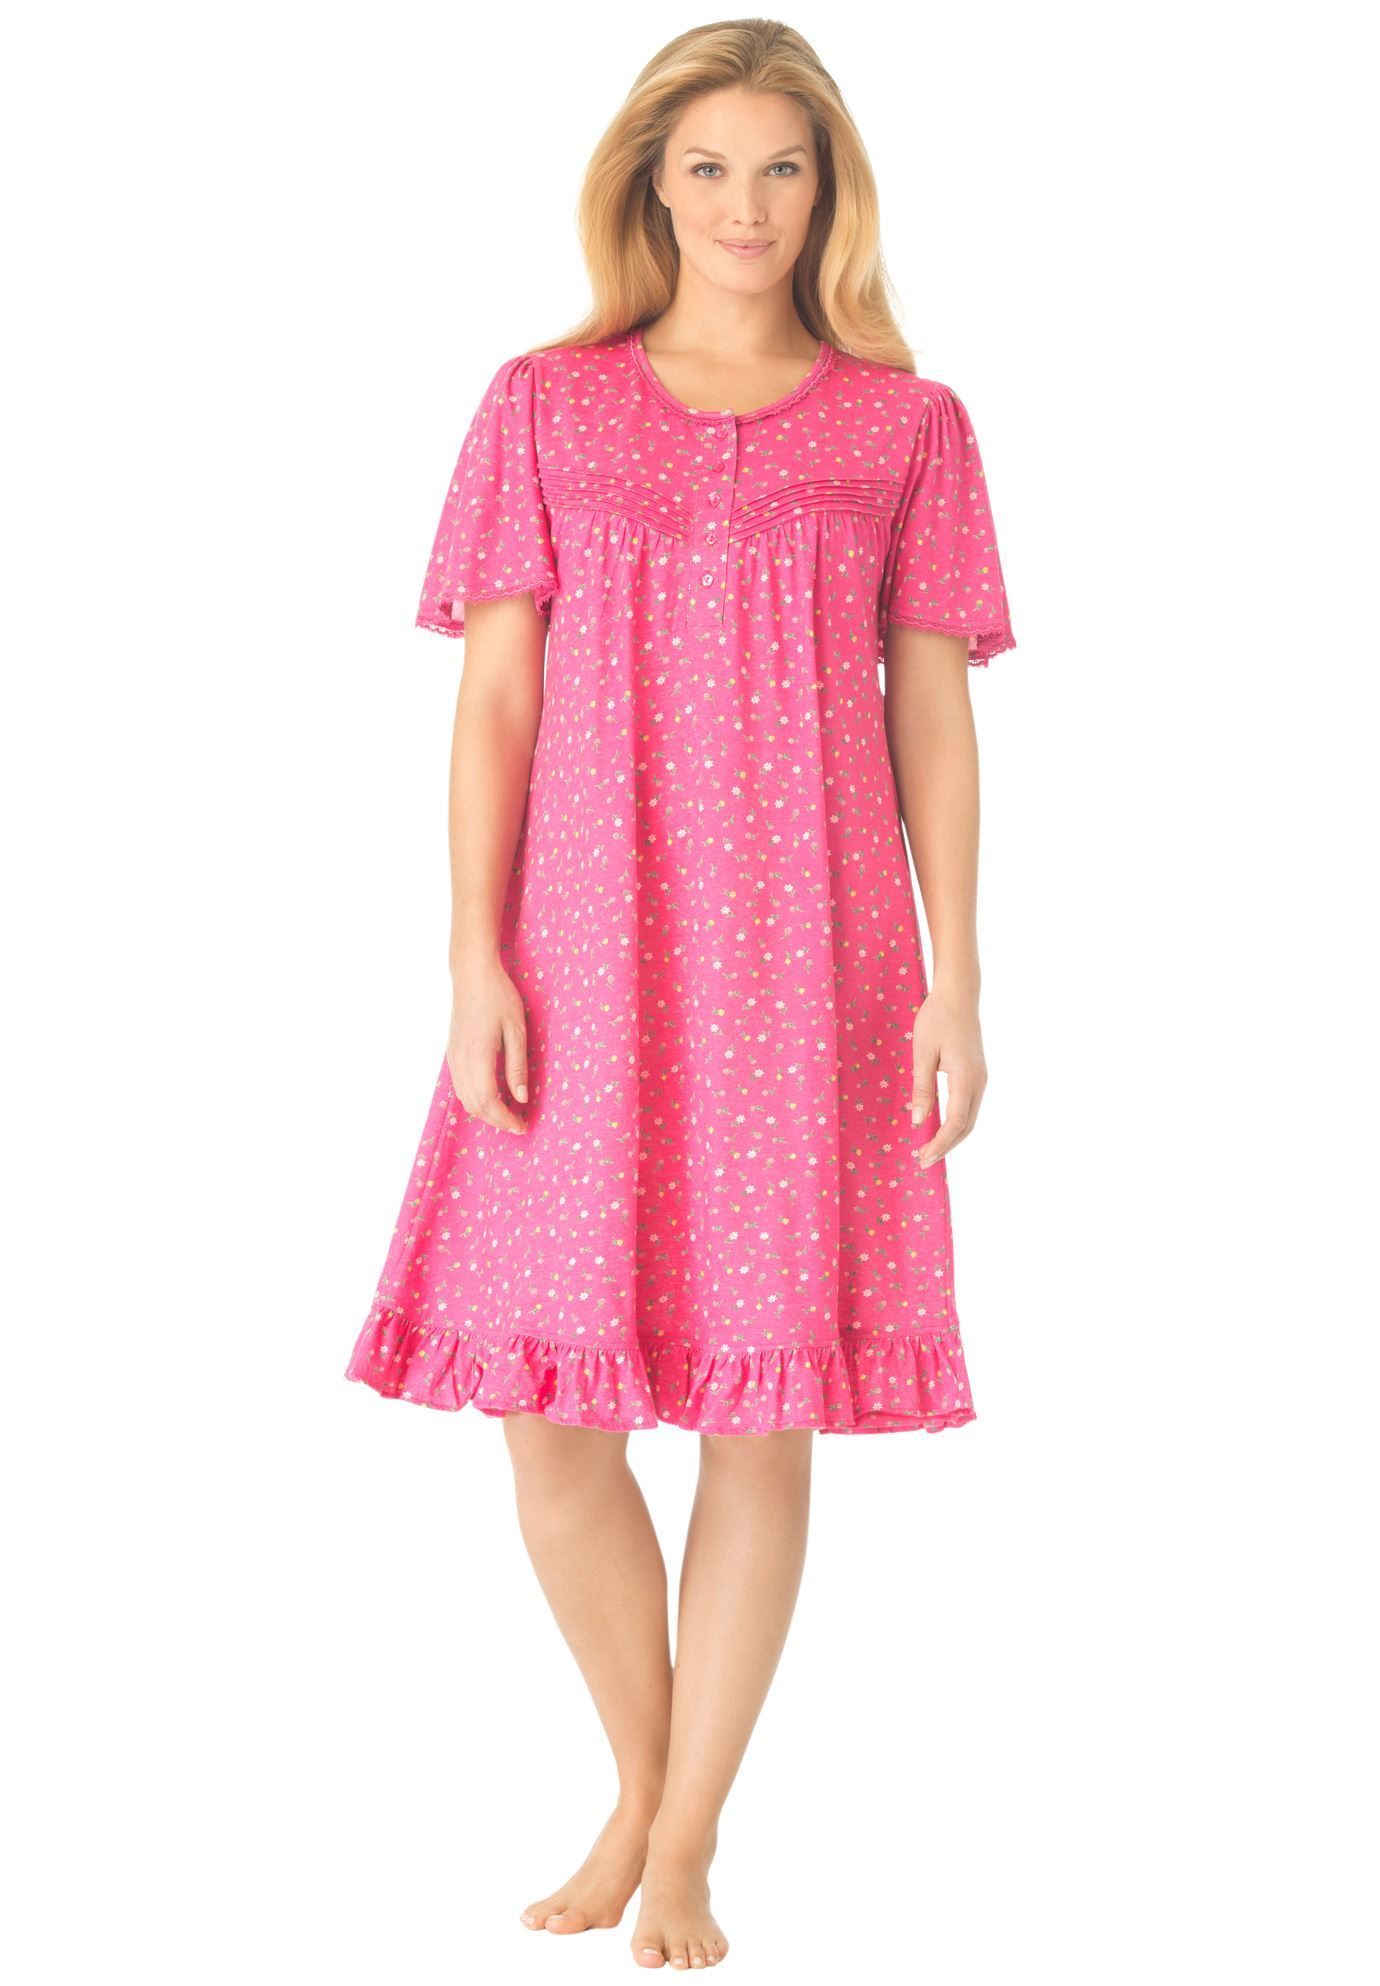 39b8cfd483 Short knit rosebud gown by Dreams   Co.®